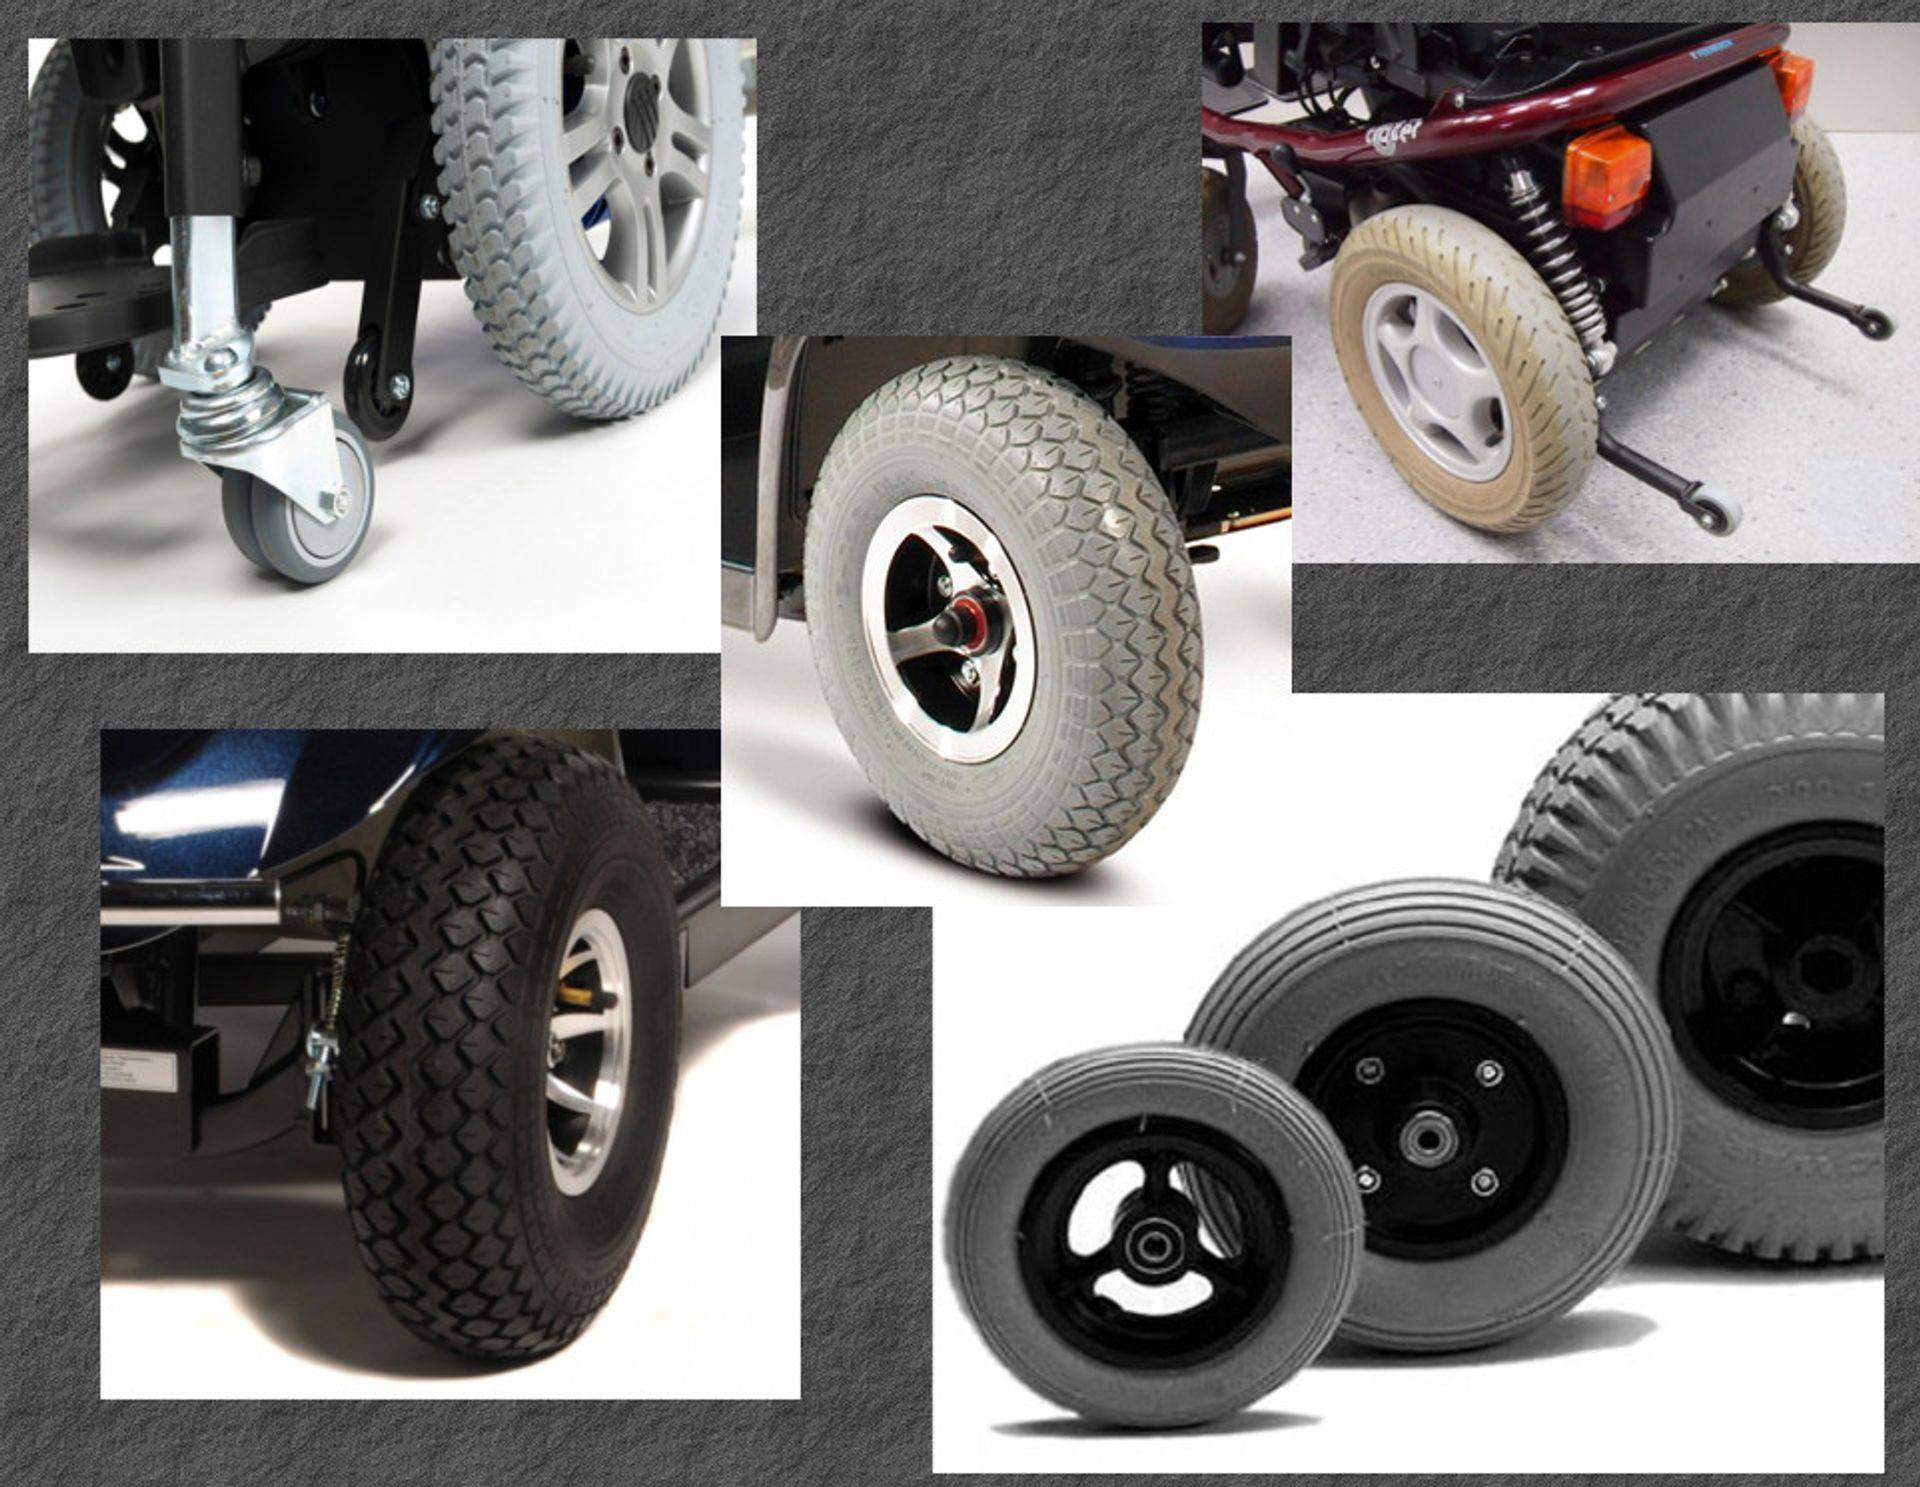 tyres and inner tubes for mobility scooters